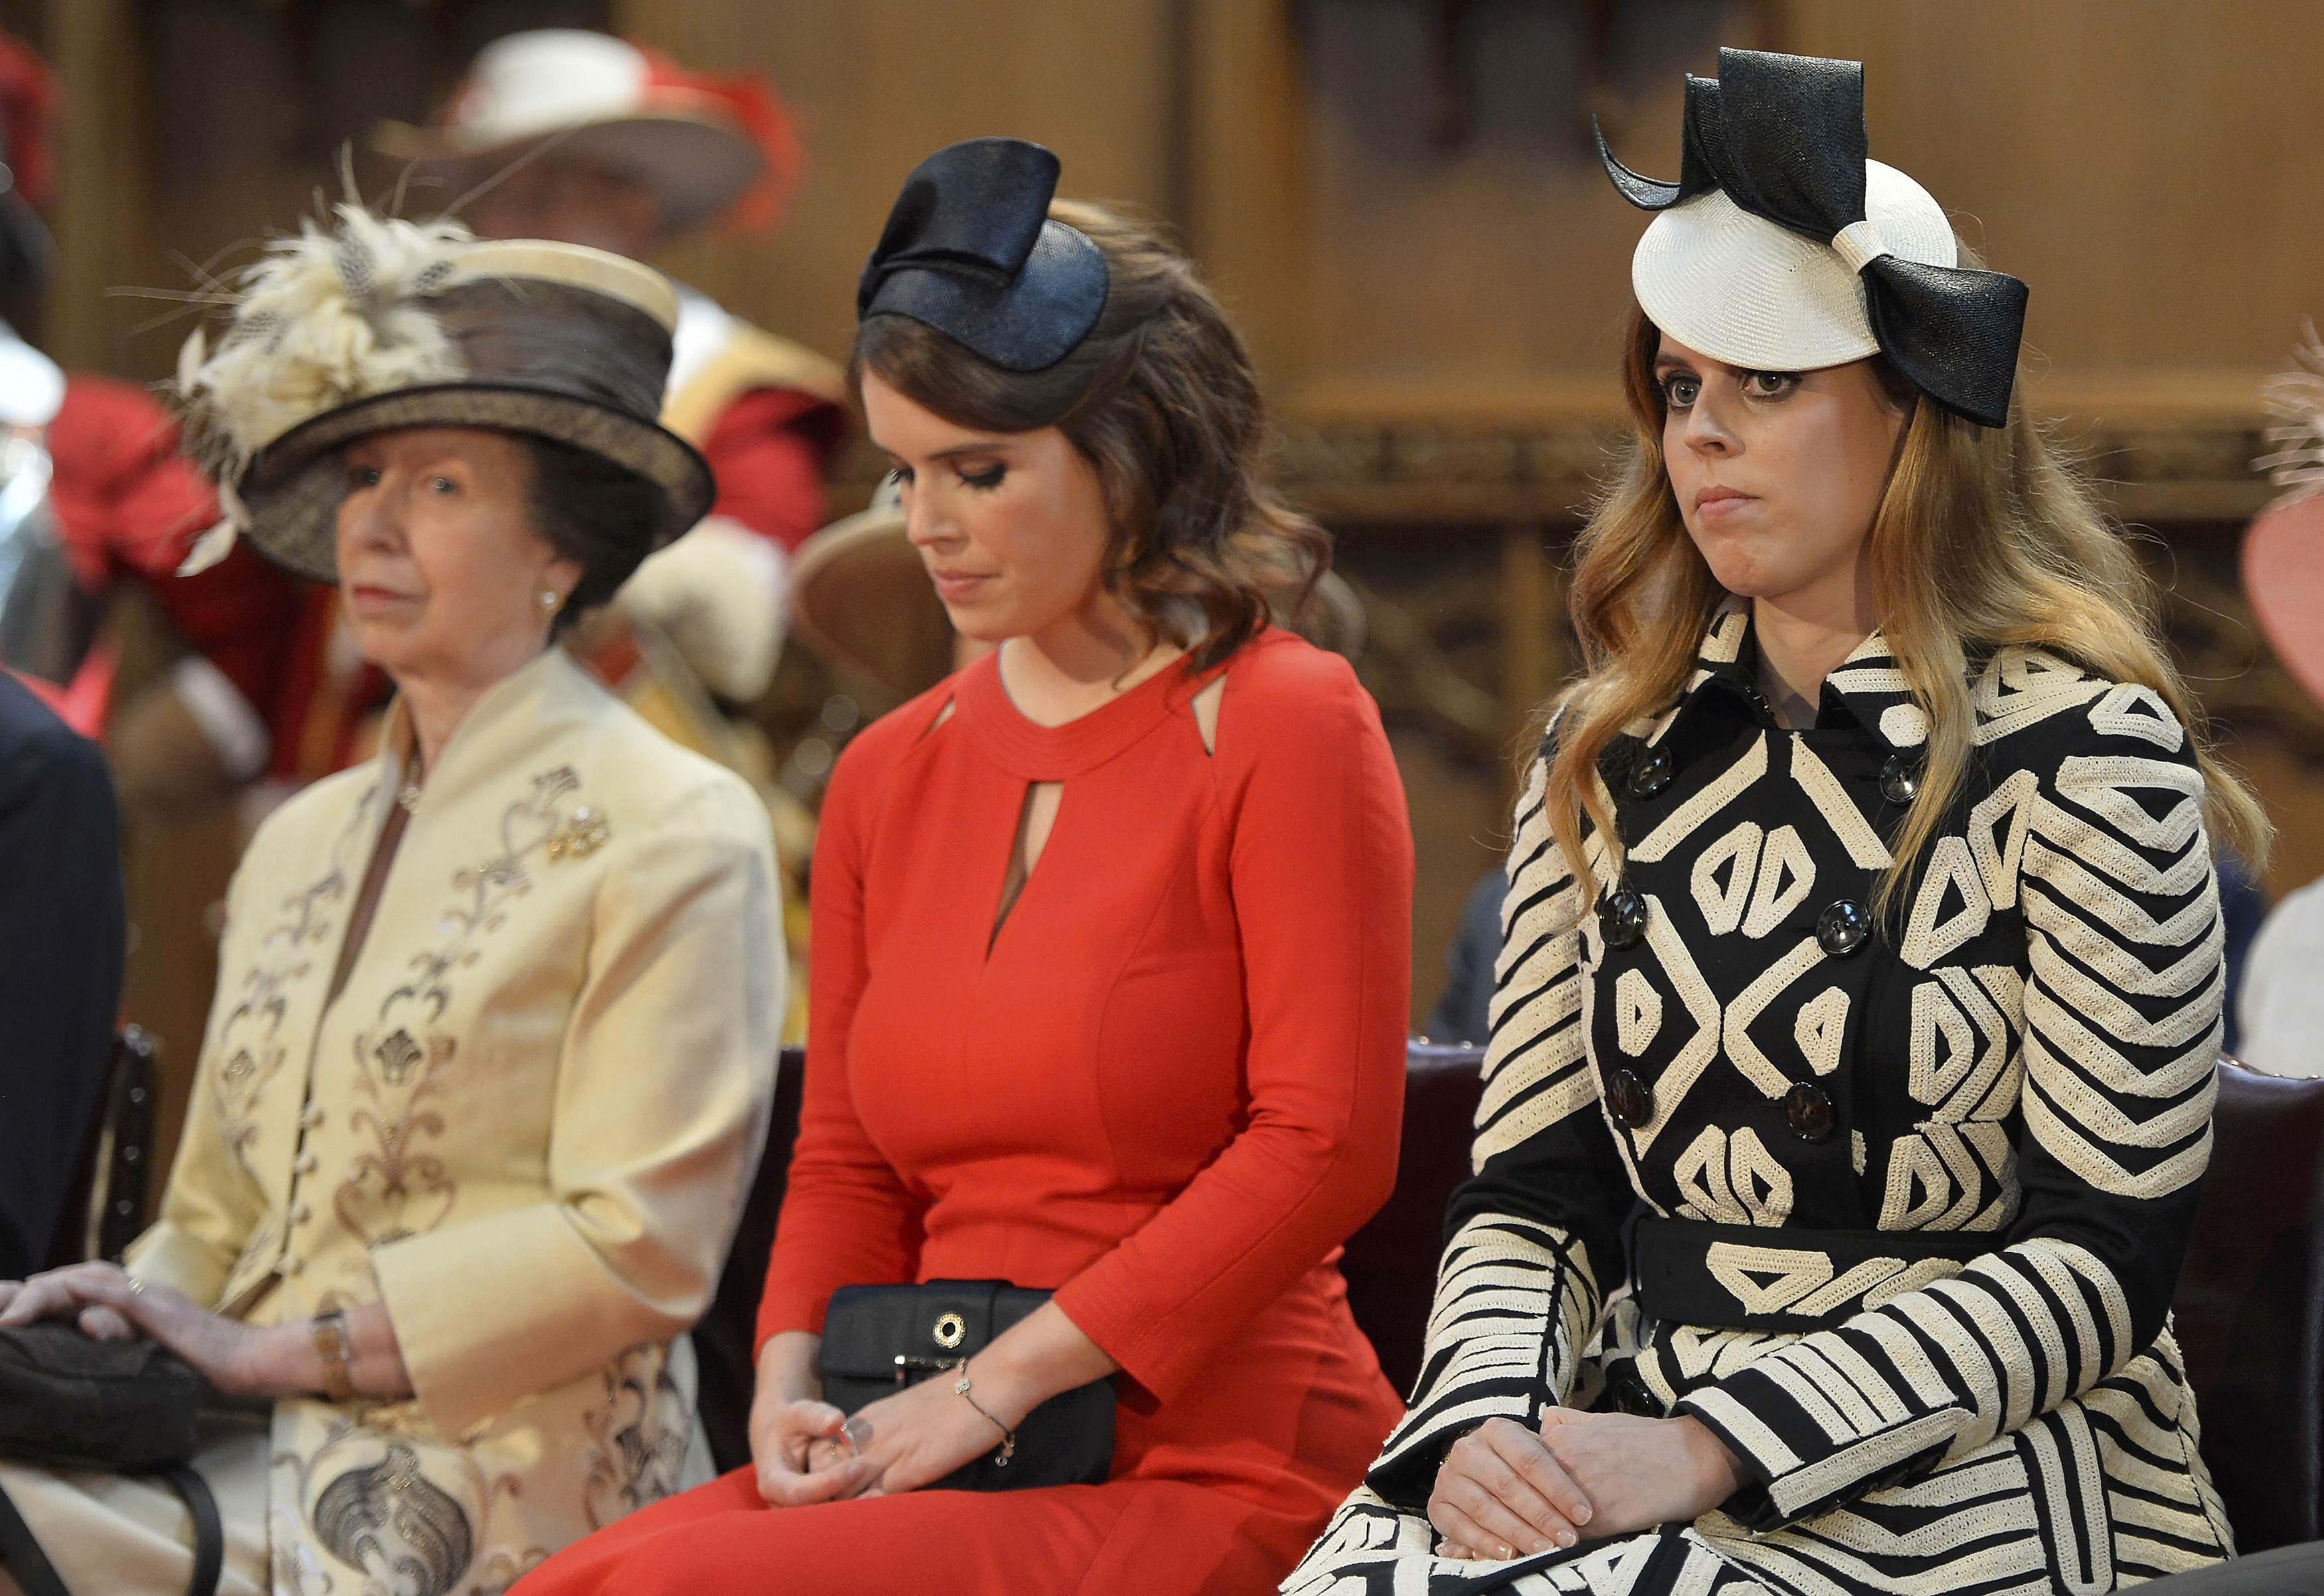 kate middleton gets tough competition from lady amelia